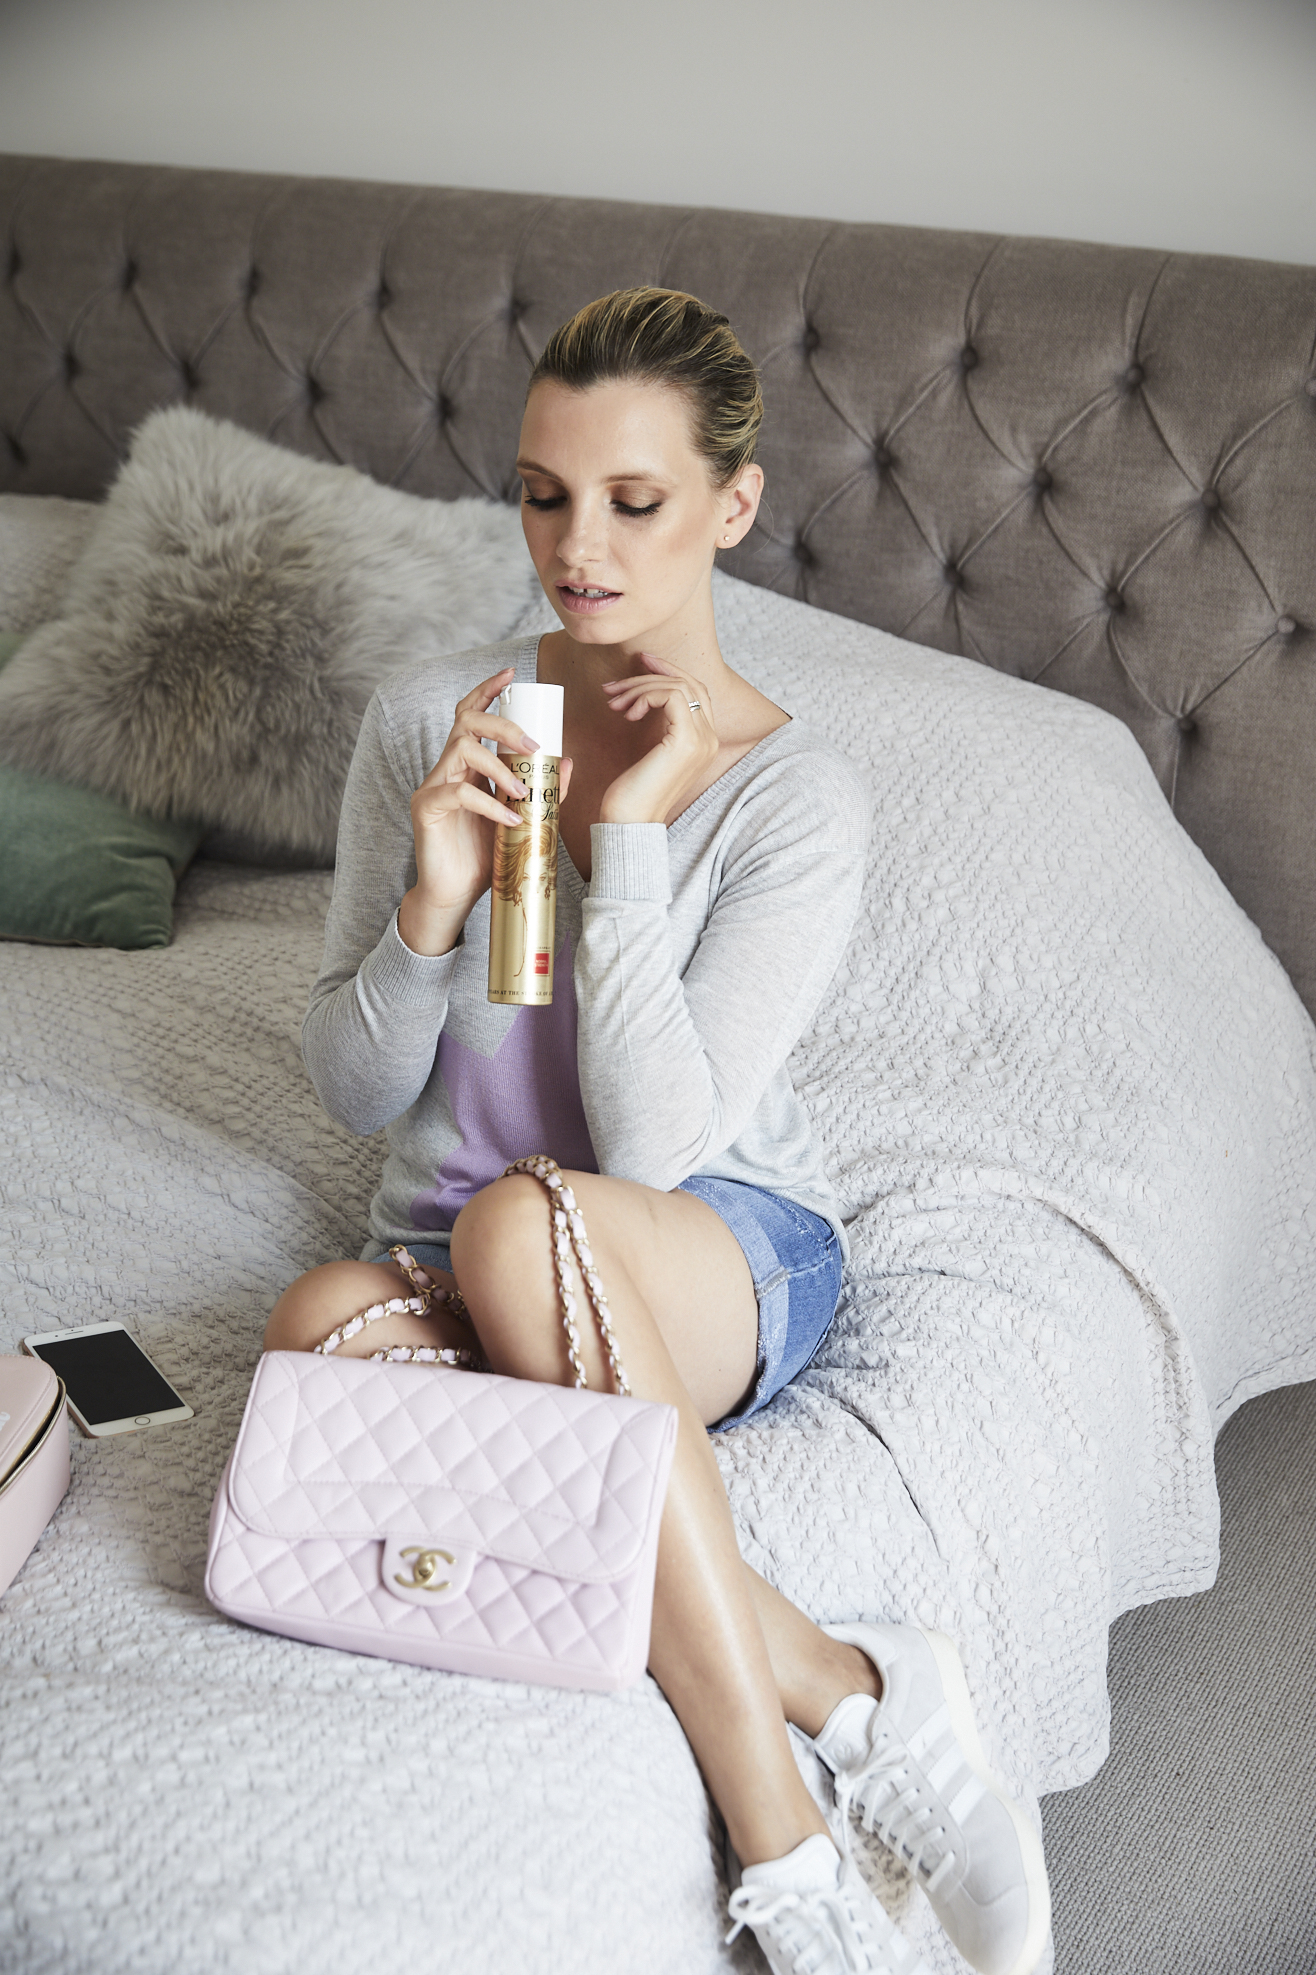 pink chanel handbag and elnett